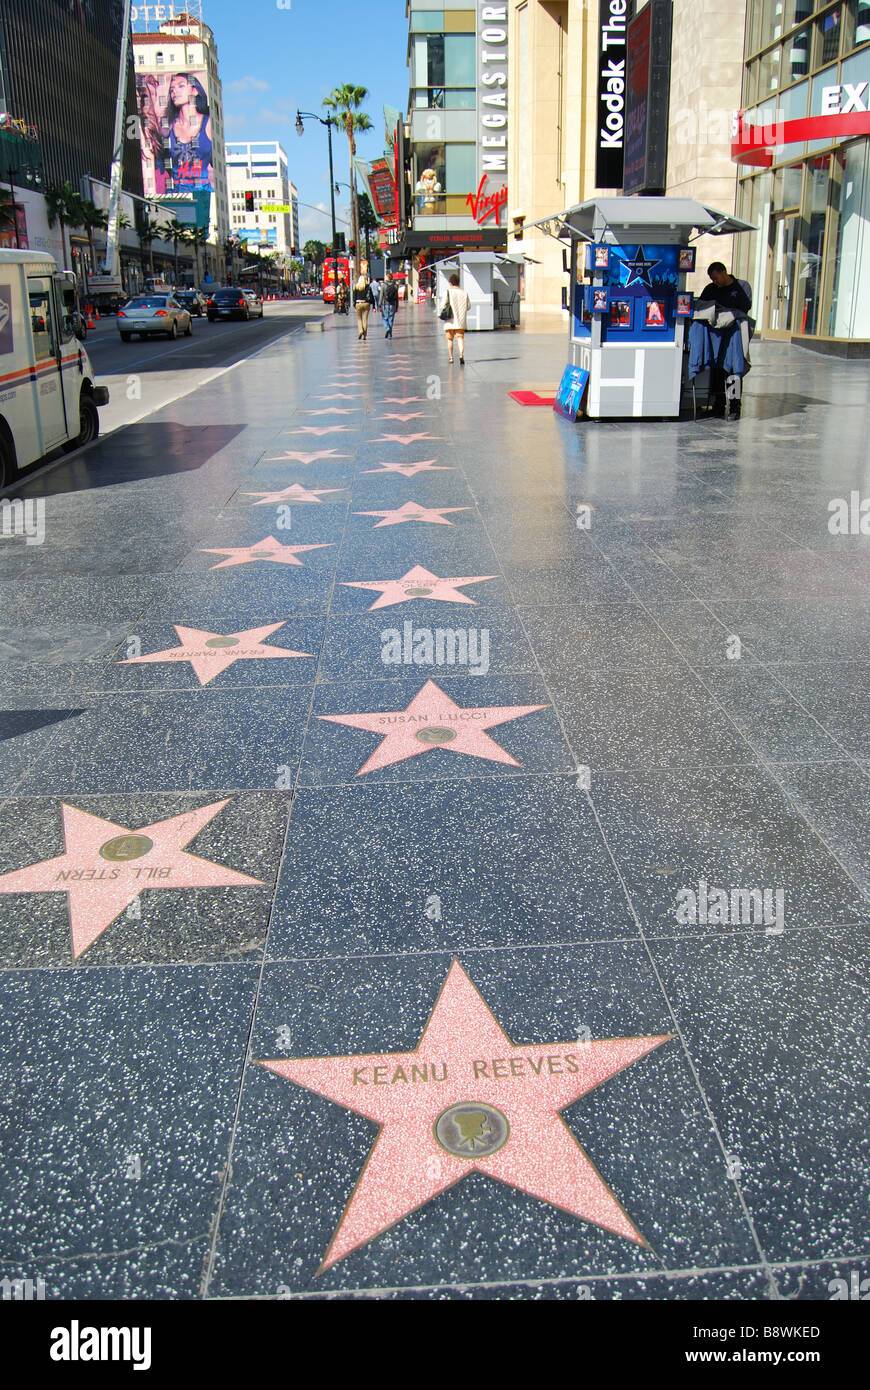 hollywood walk of fame hollywood boulevard hollywood los angeles stock photo 22691717 alamy. Black Bedroom Furniture Sets. Home Design Ideas